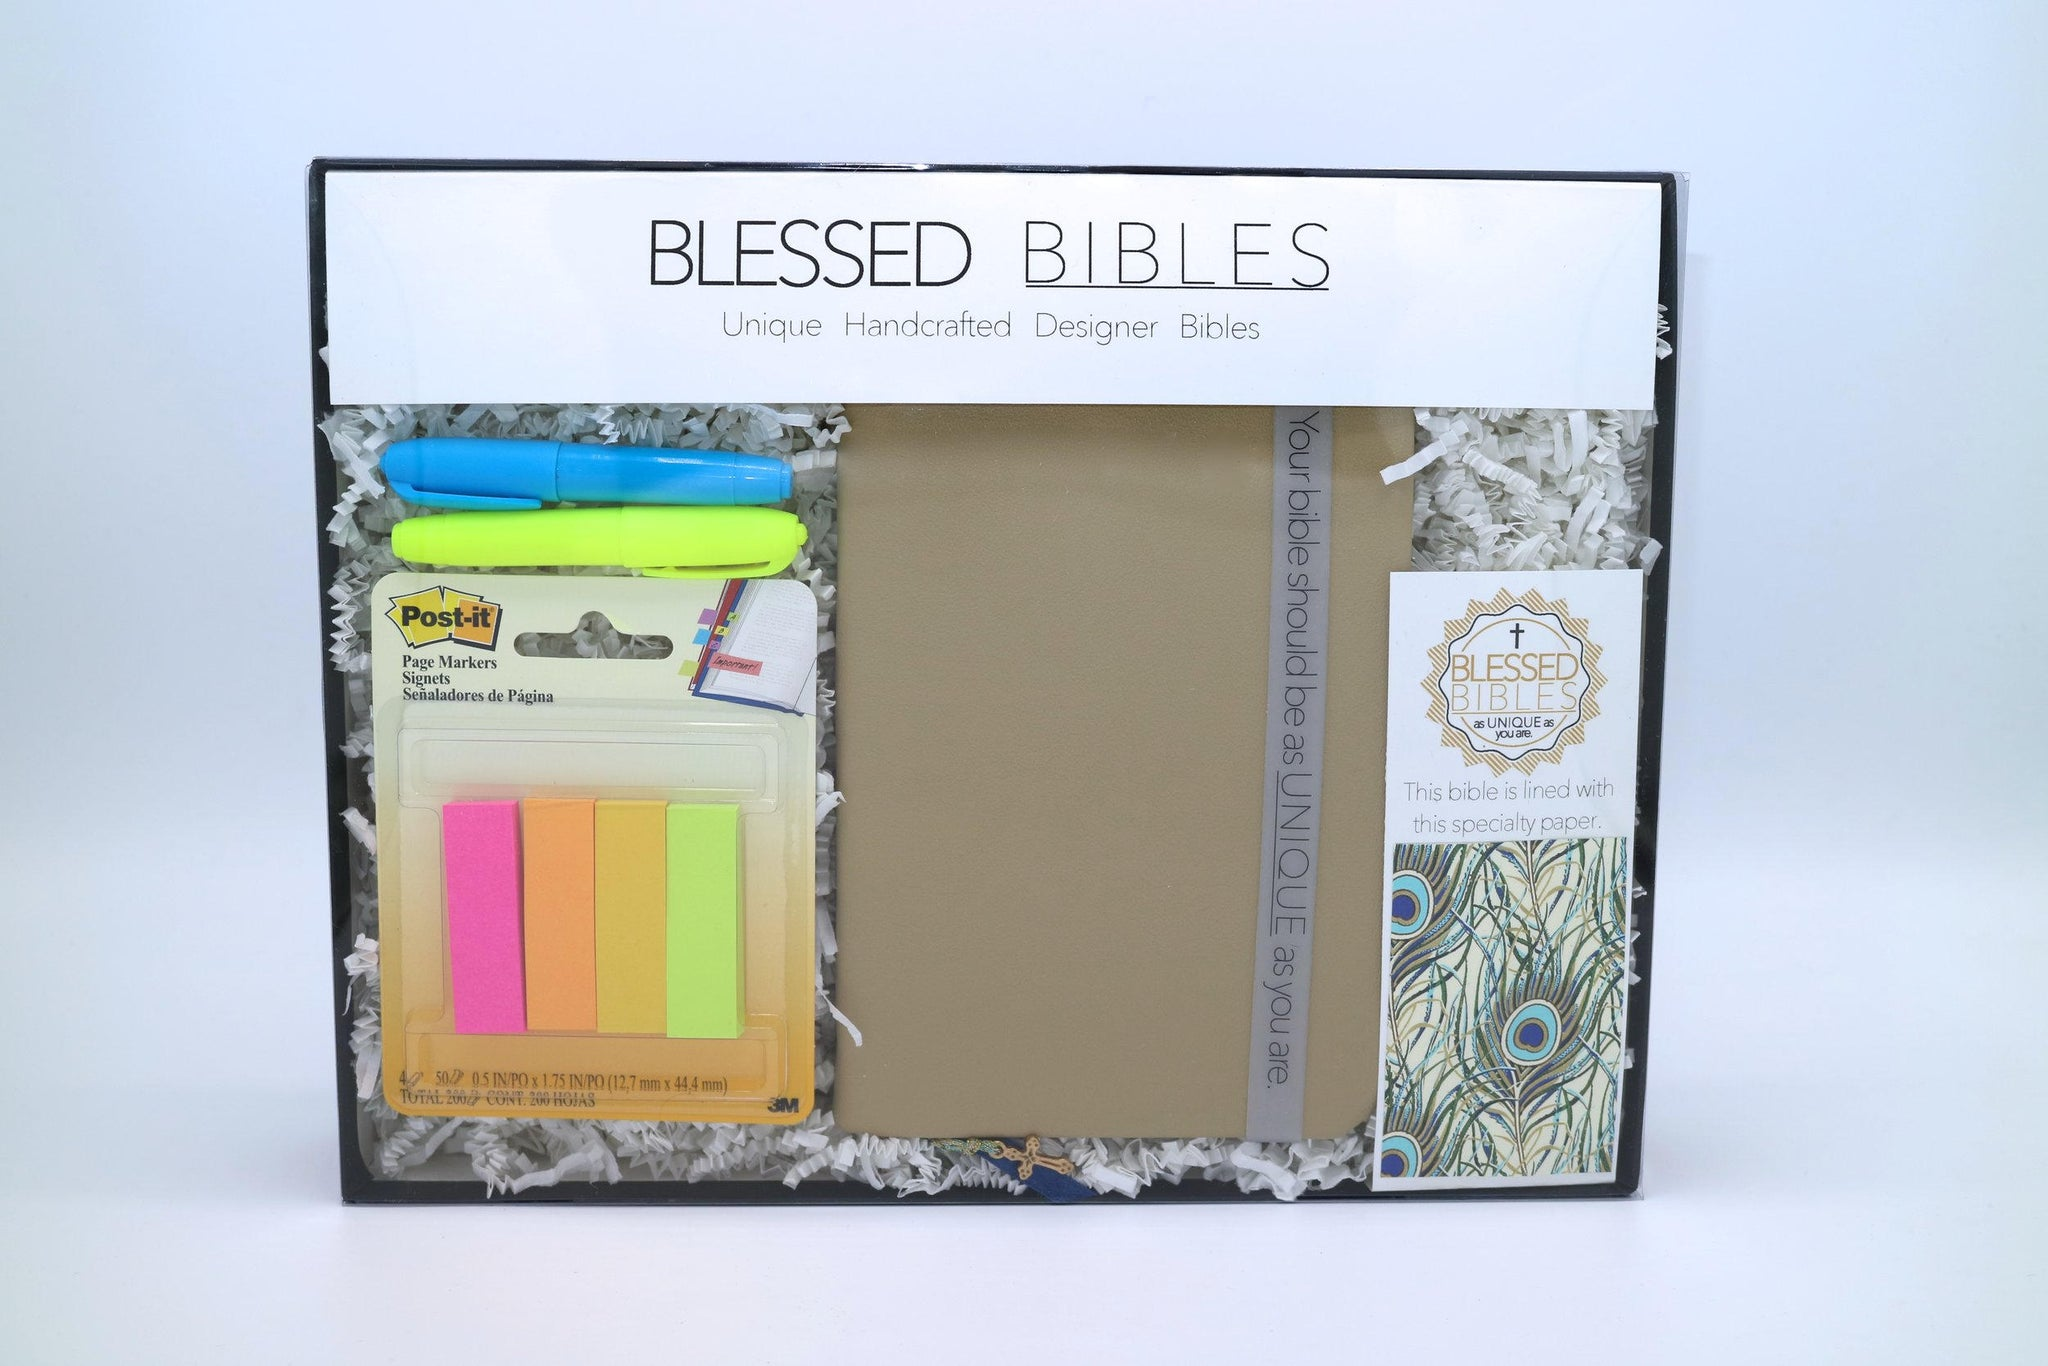 Peacock Plume Bible Kit - NKJV